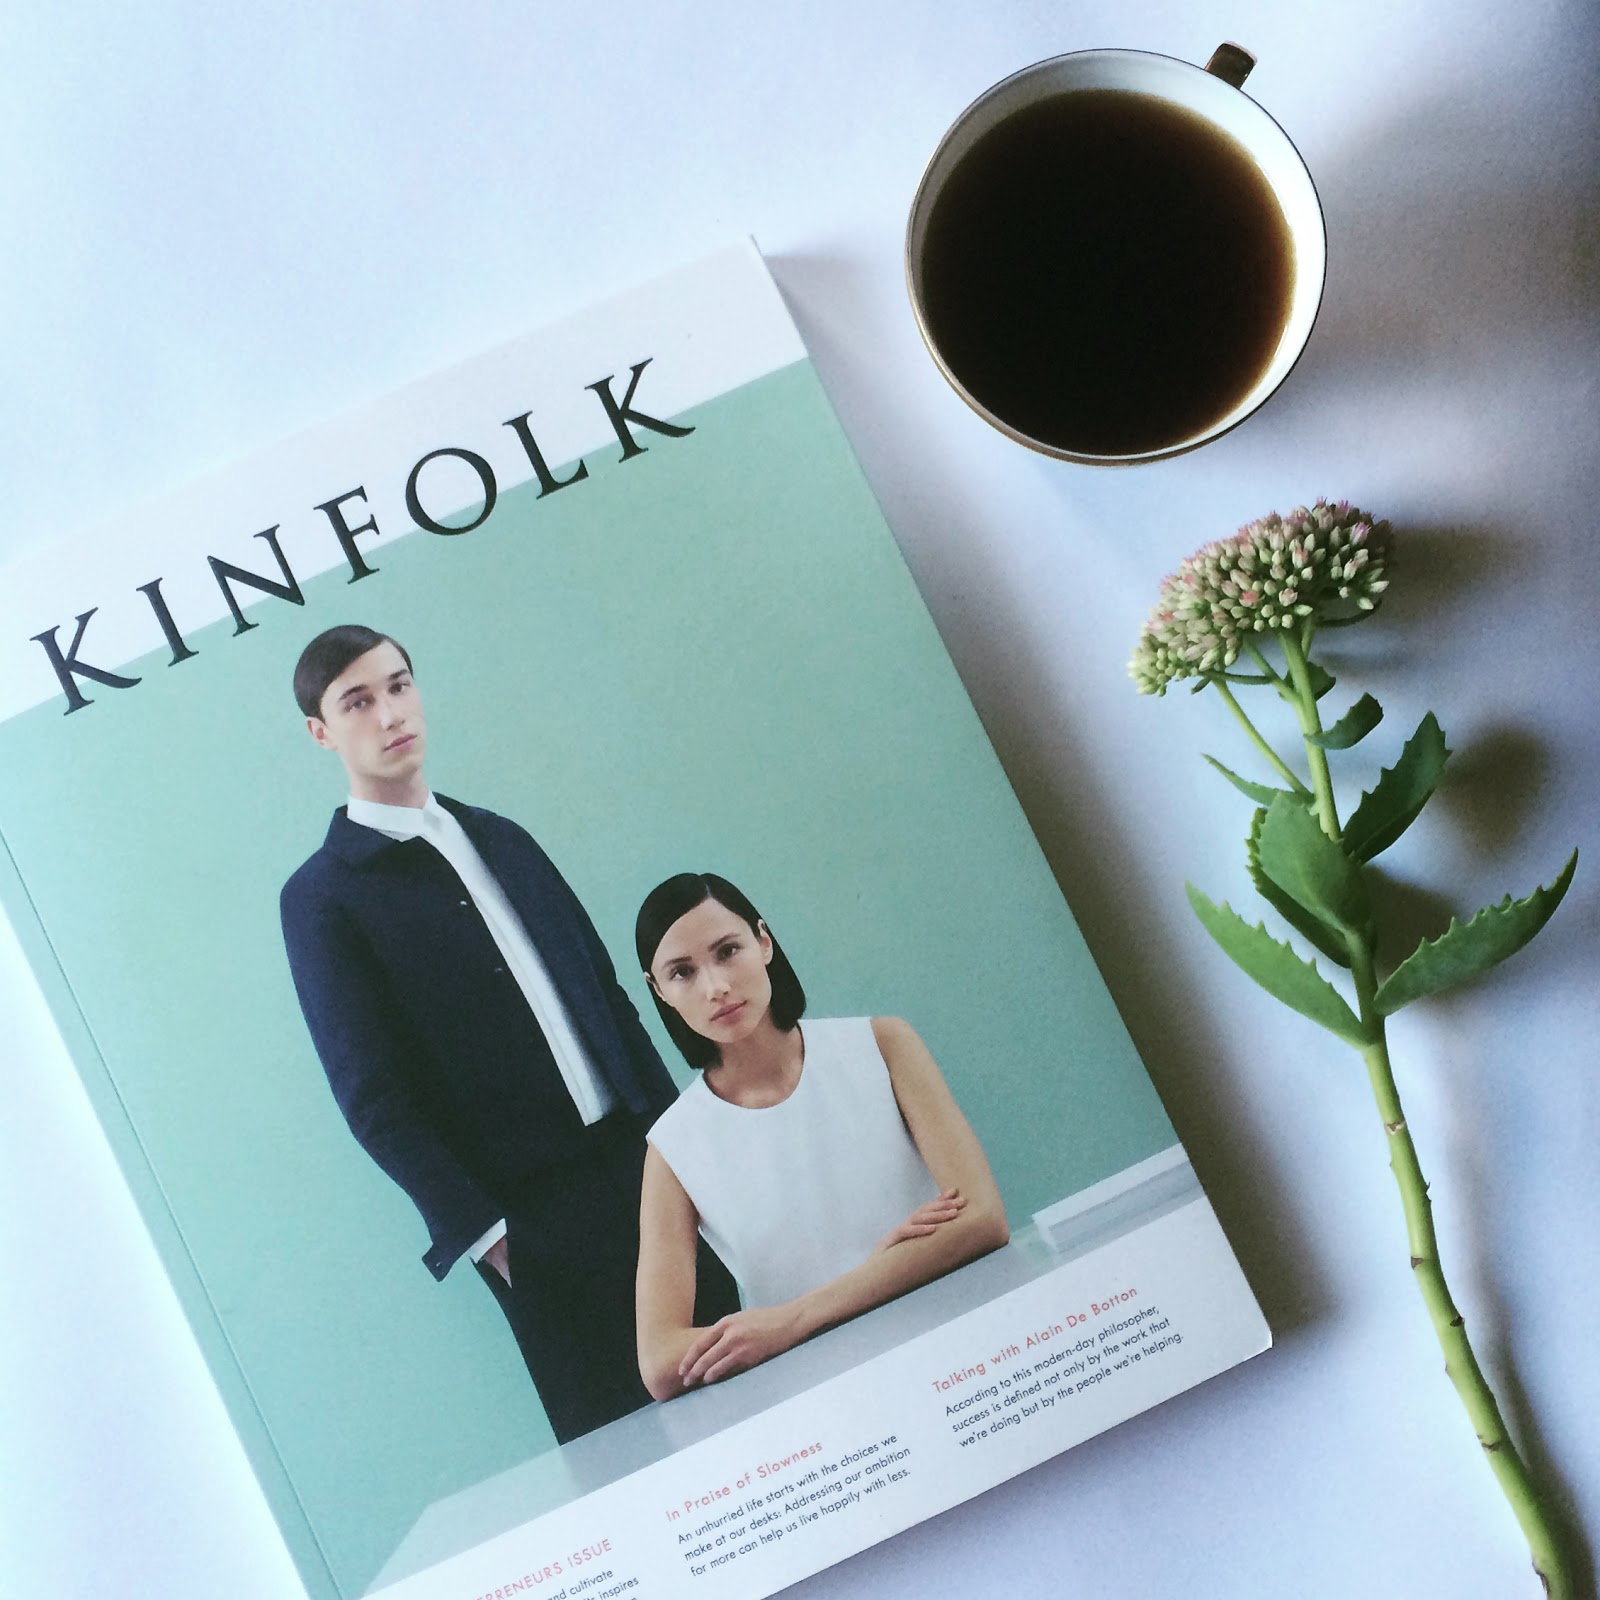 Kinfolk magazine by FASHION ART MEDIA